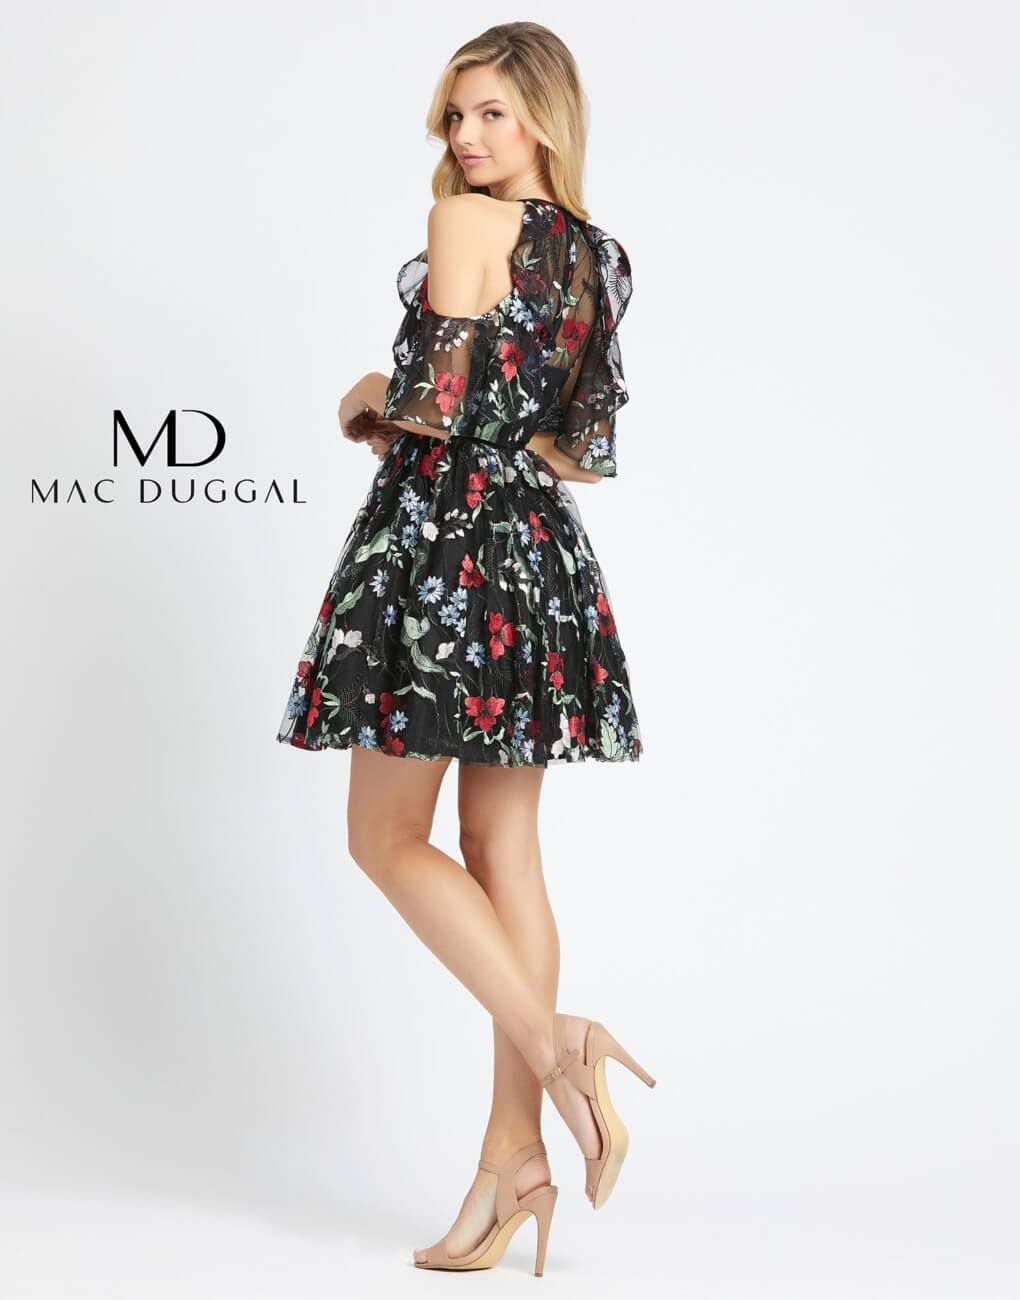 Style 40858 Mac Duggal Black Size 4 Embroidery High Neck Tall Height Floral Homecoming Cocktail Dress on Queenly